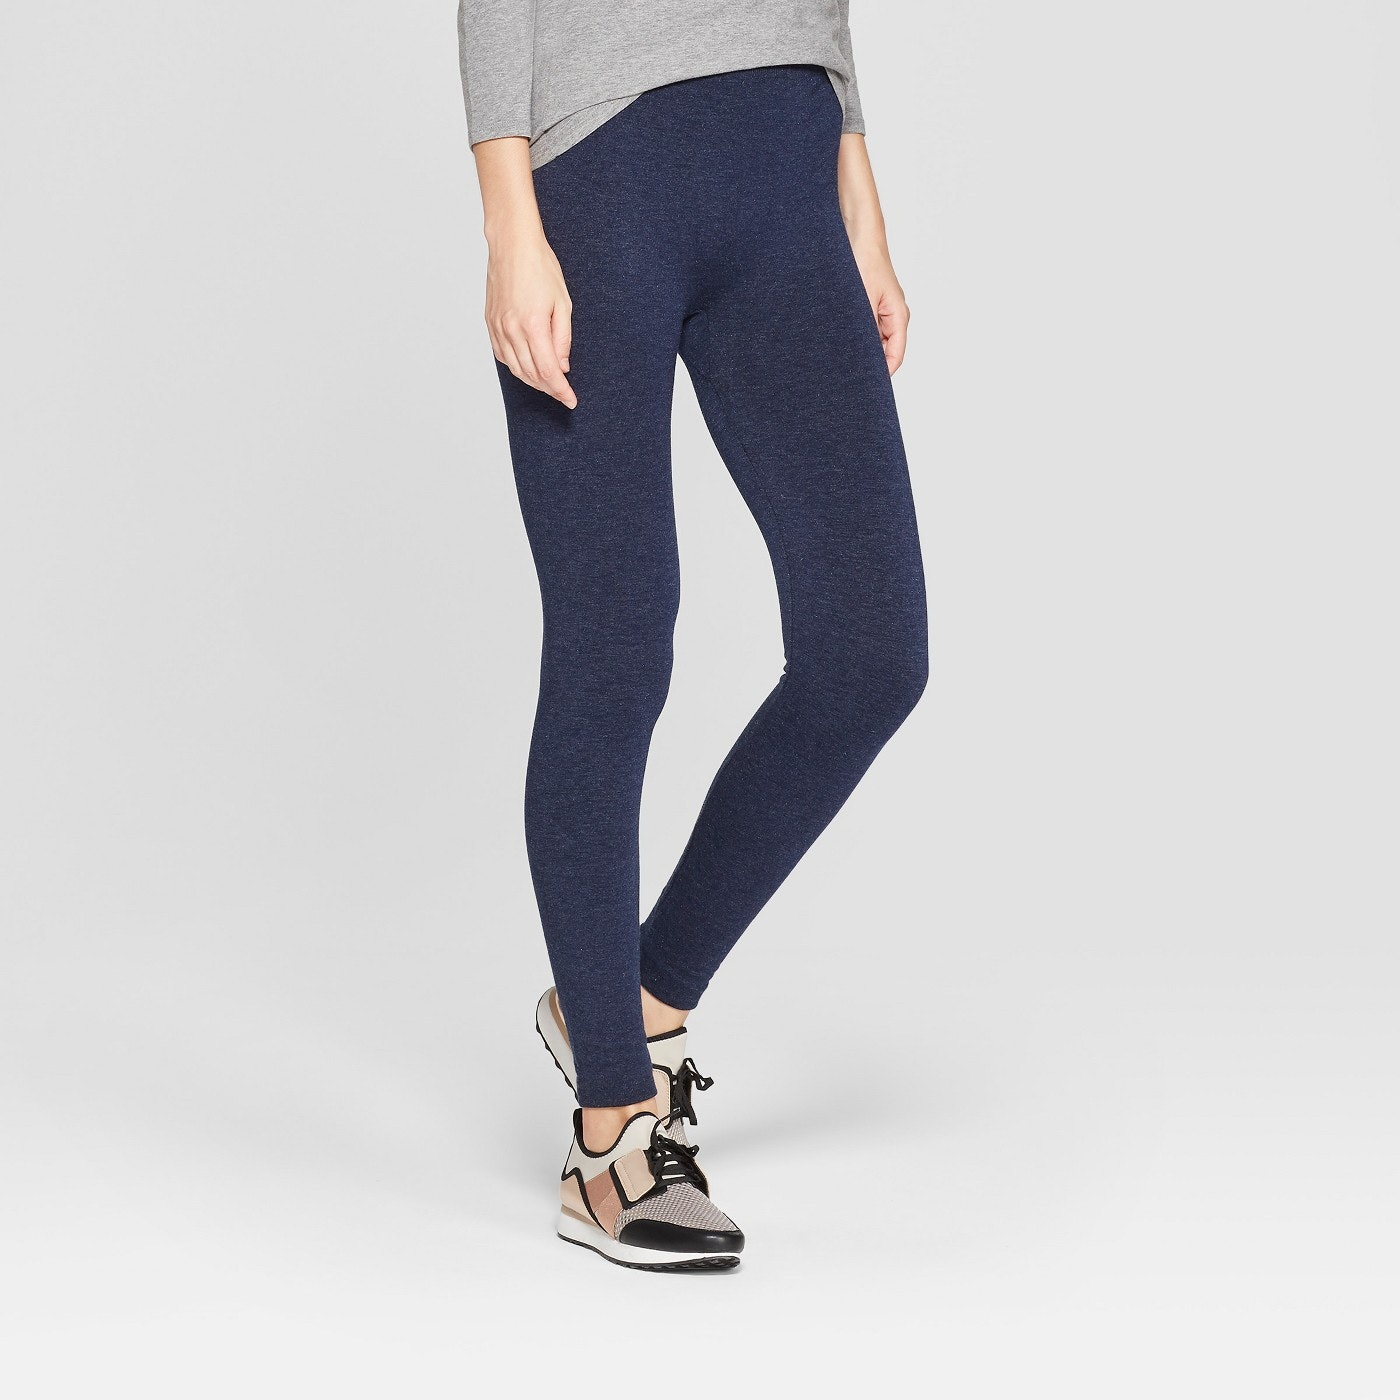 8e88a5efa5efad The Best Fleece-Lined Leggings To Keep You From Freezing During Winter  Workouts